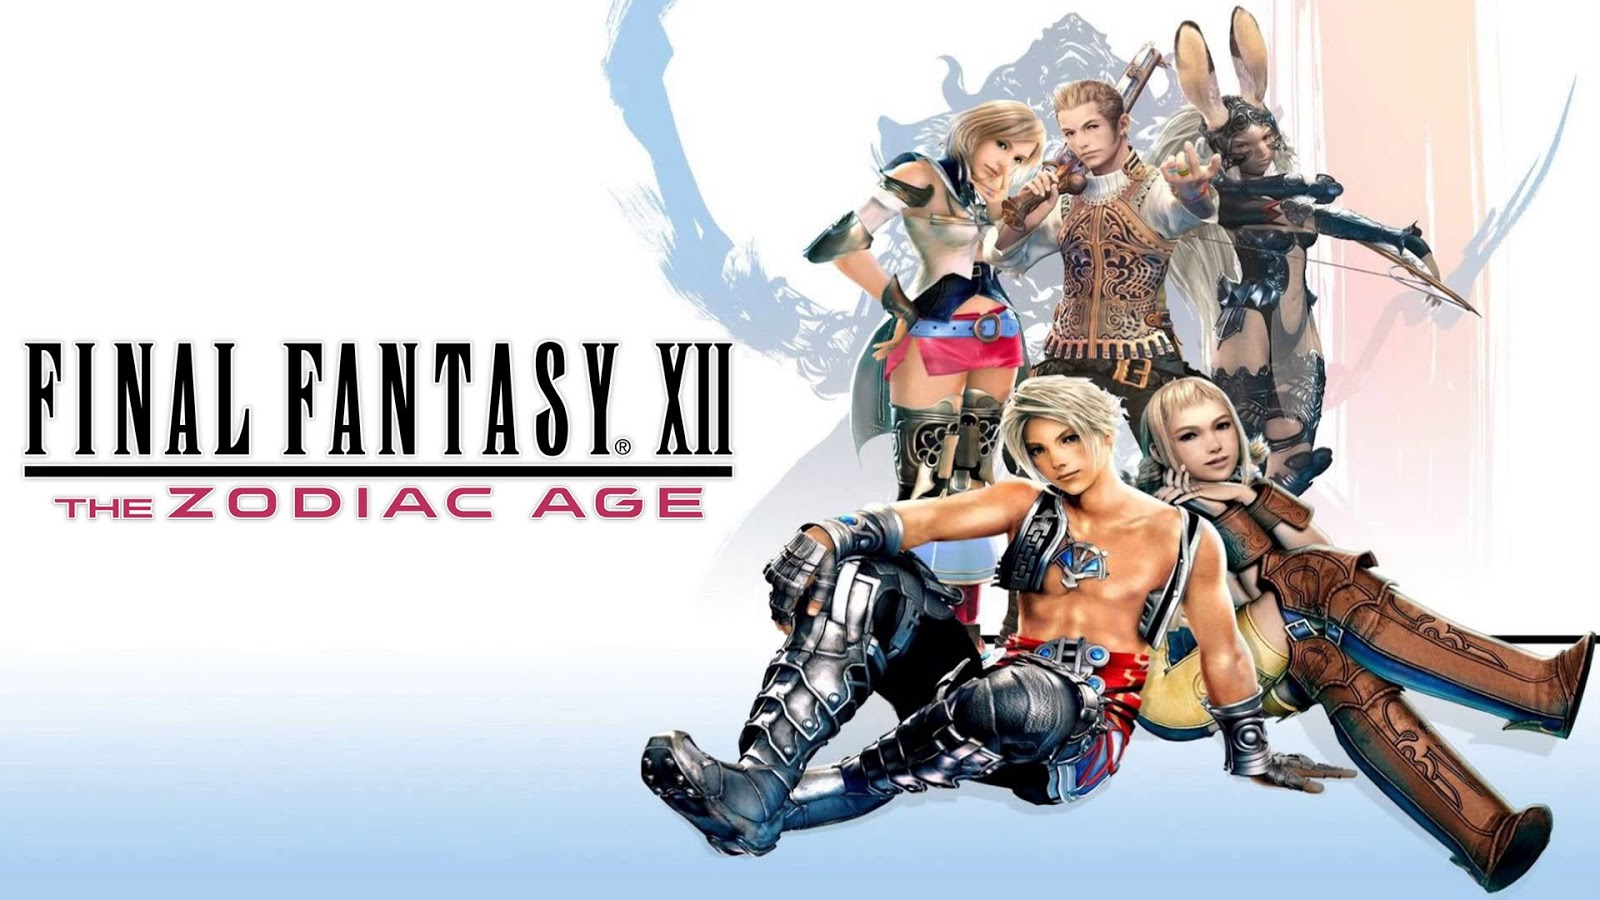 As far as remastered games go ffxii stands up quite well on its own feet without too much reworking which is commendable for a game of over ten years of